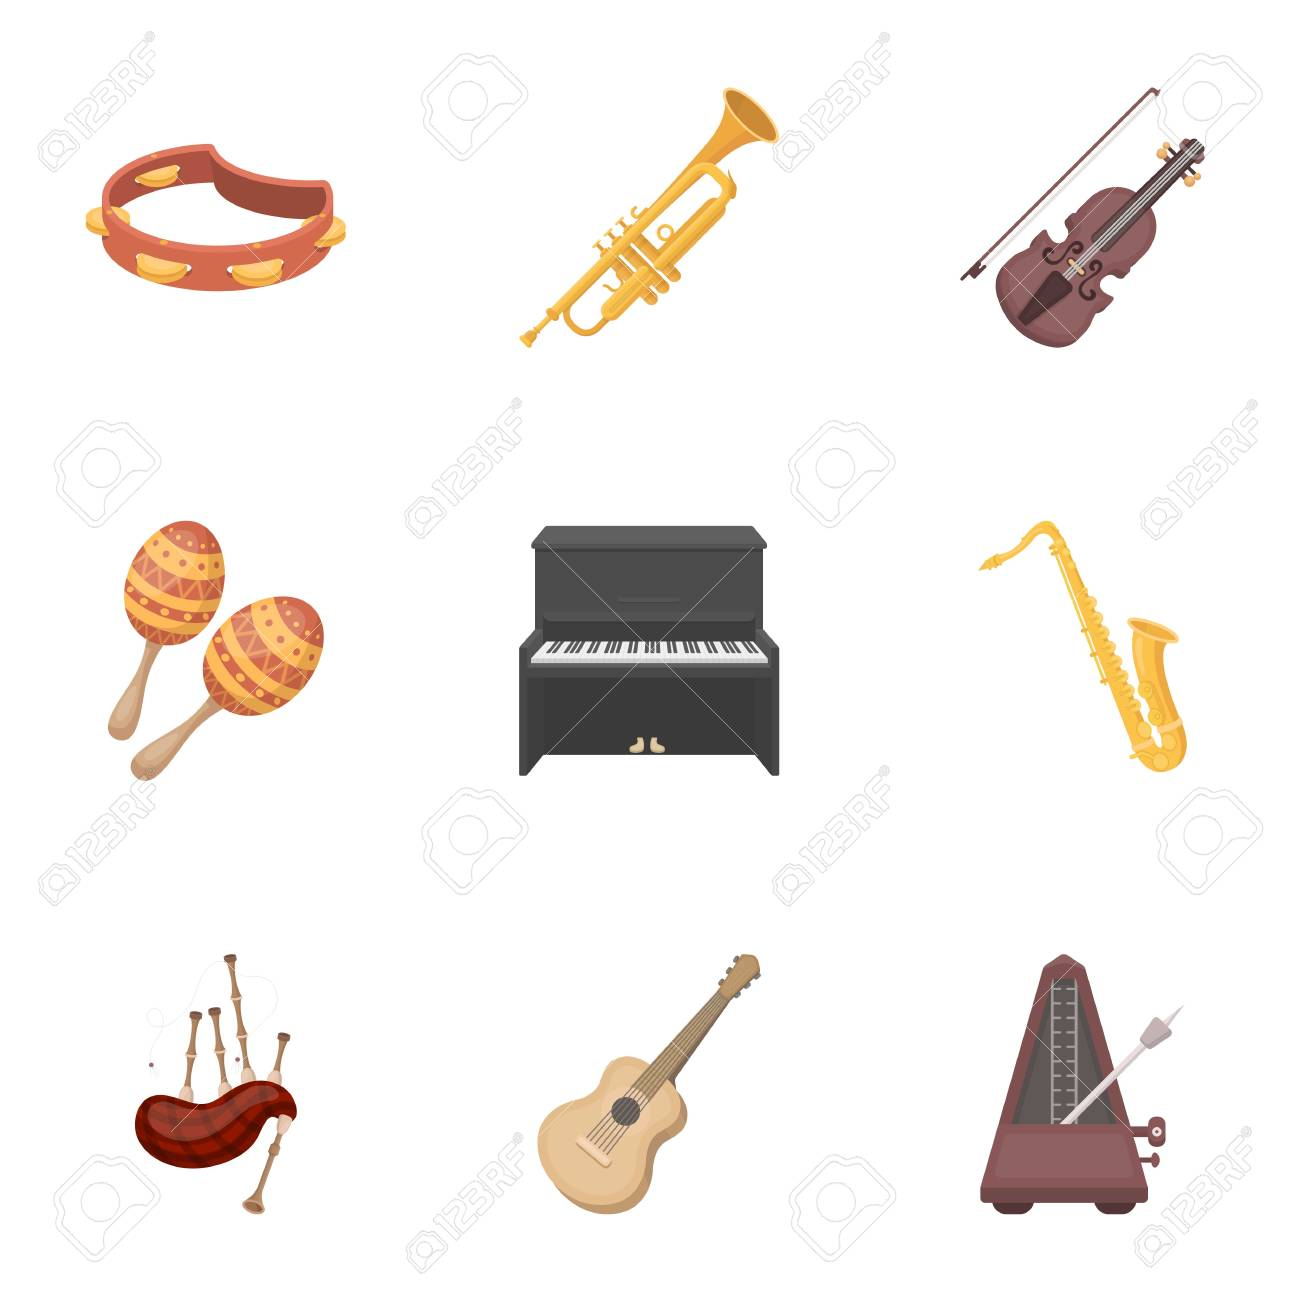 Musical Instruments Set Icons In Cartoon Style Big Collection Of